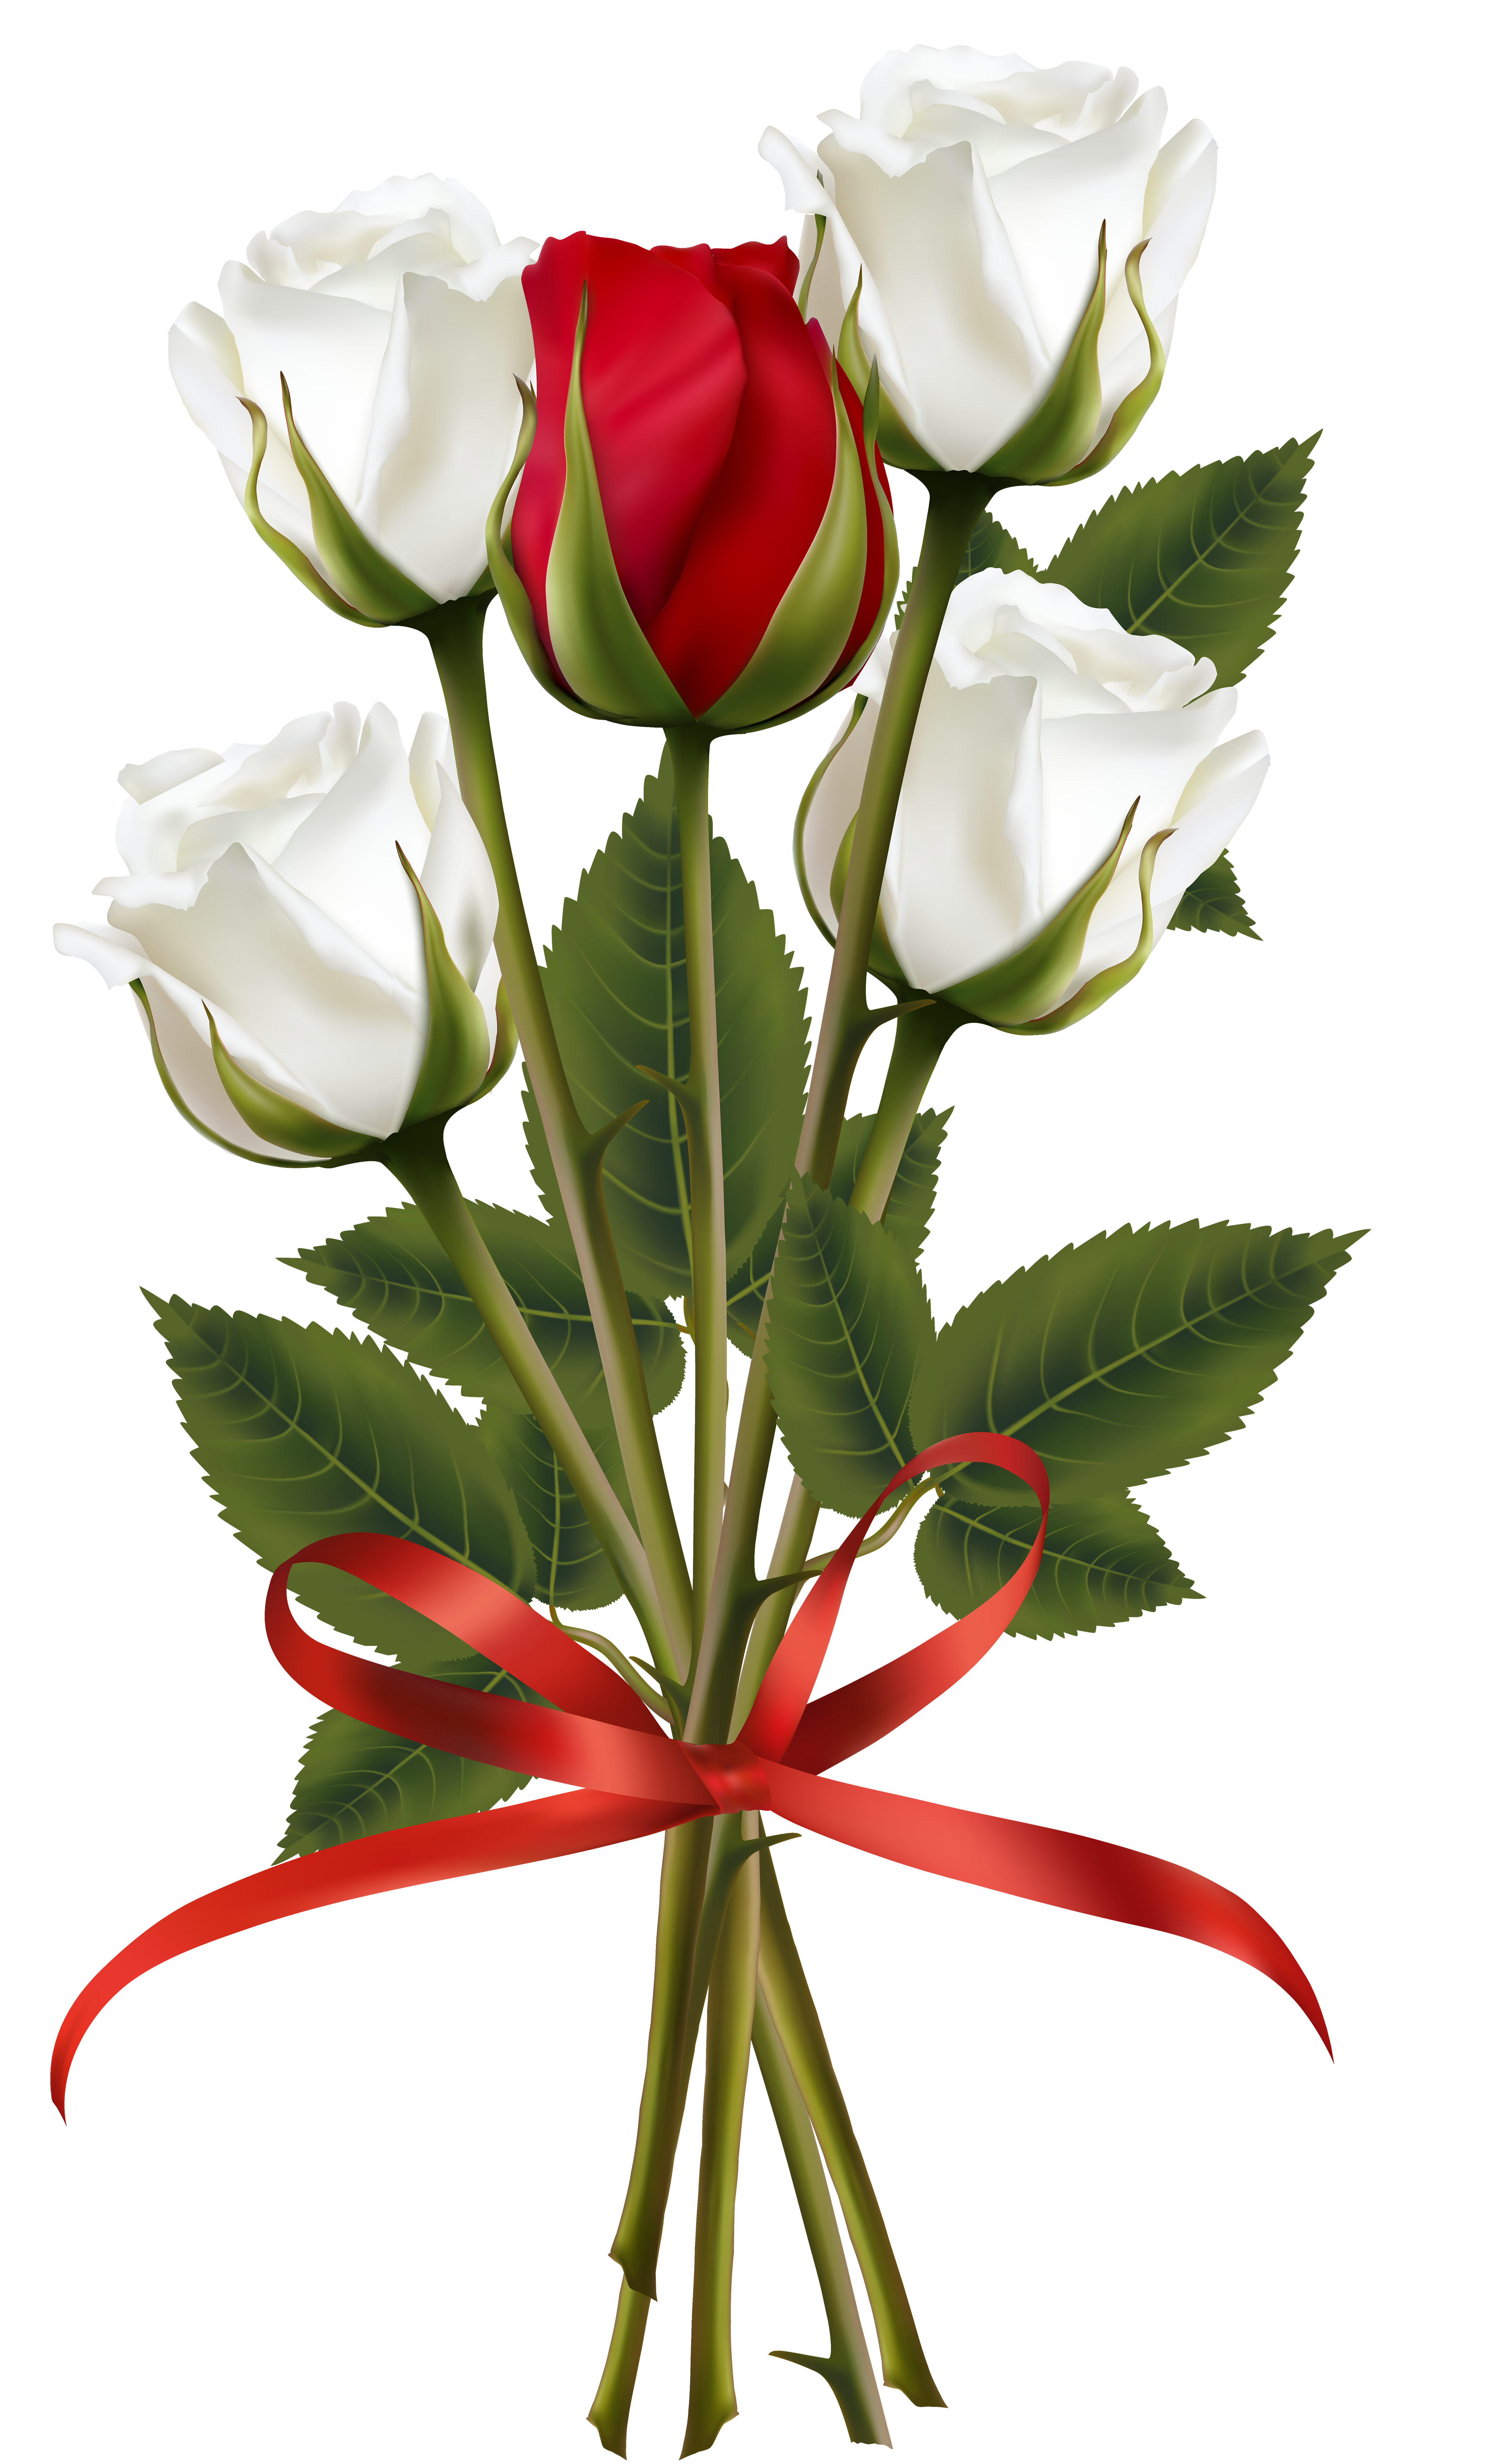 Pin By Tirath Das On Rosas Rose Flower Wallpaper Red Rose Bouquet Red And White Roses